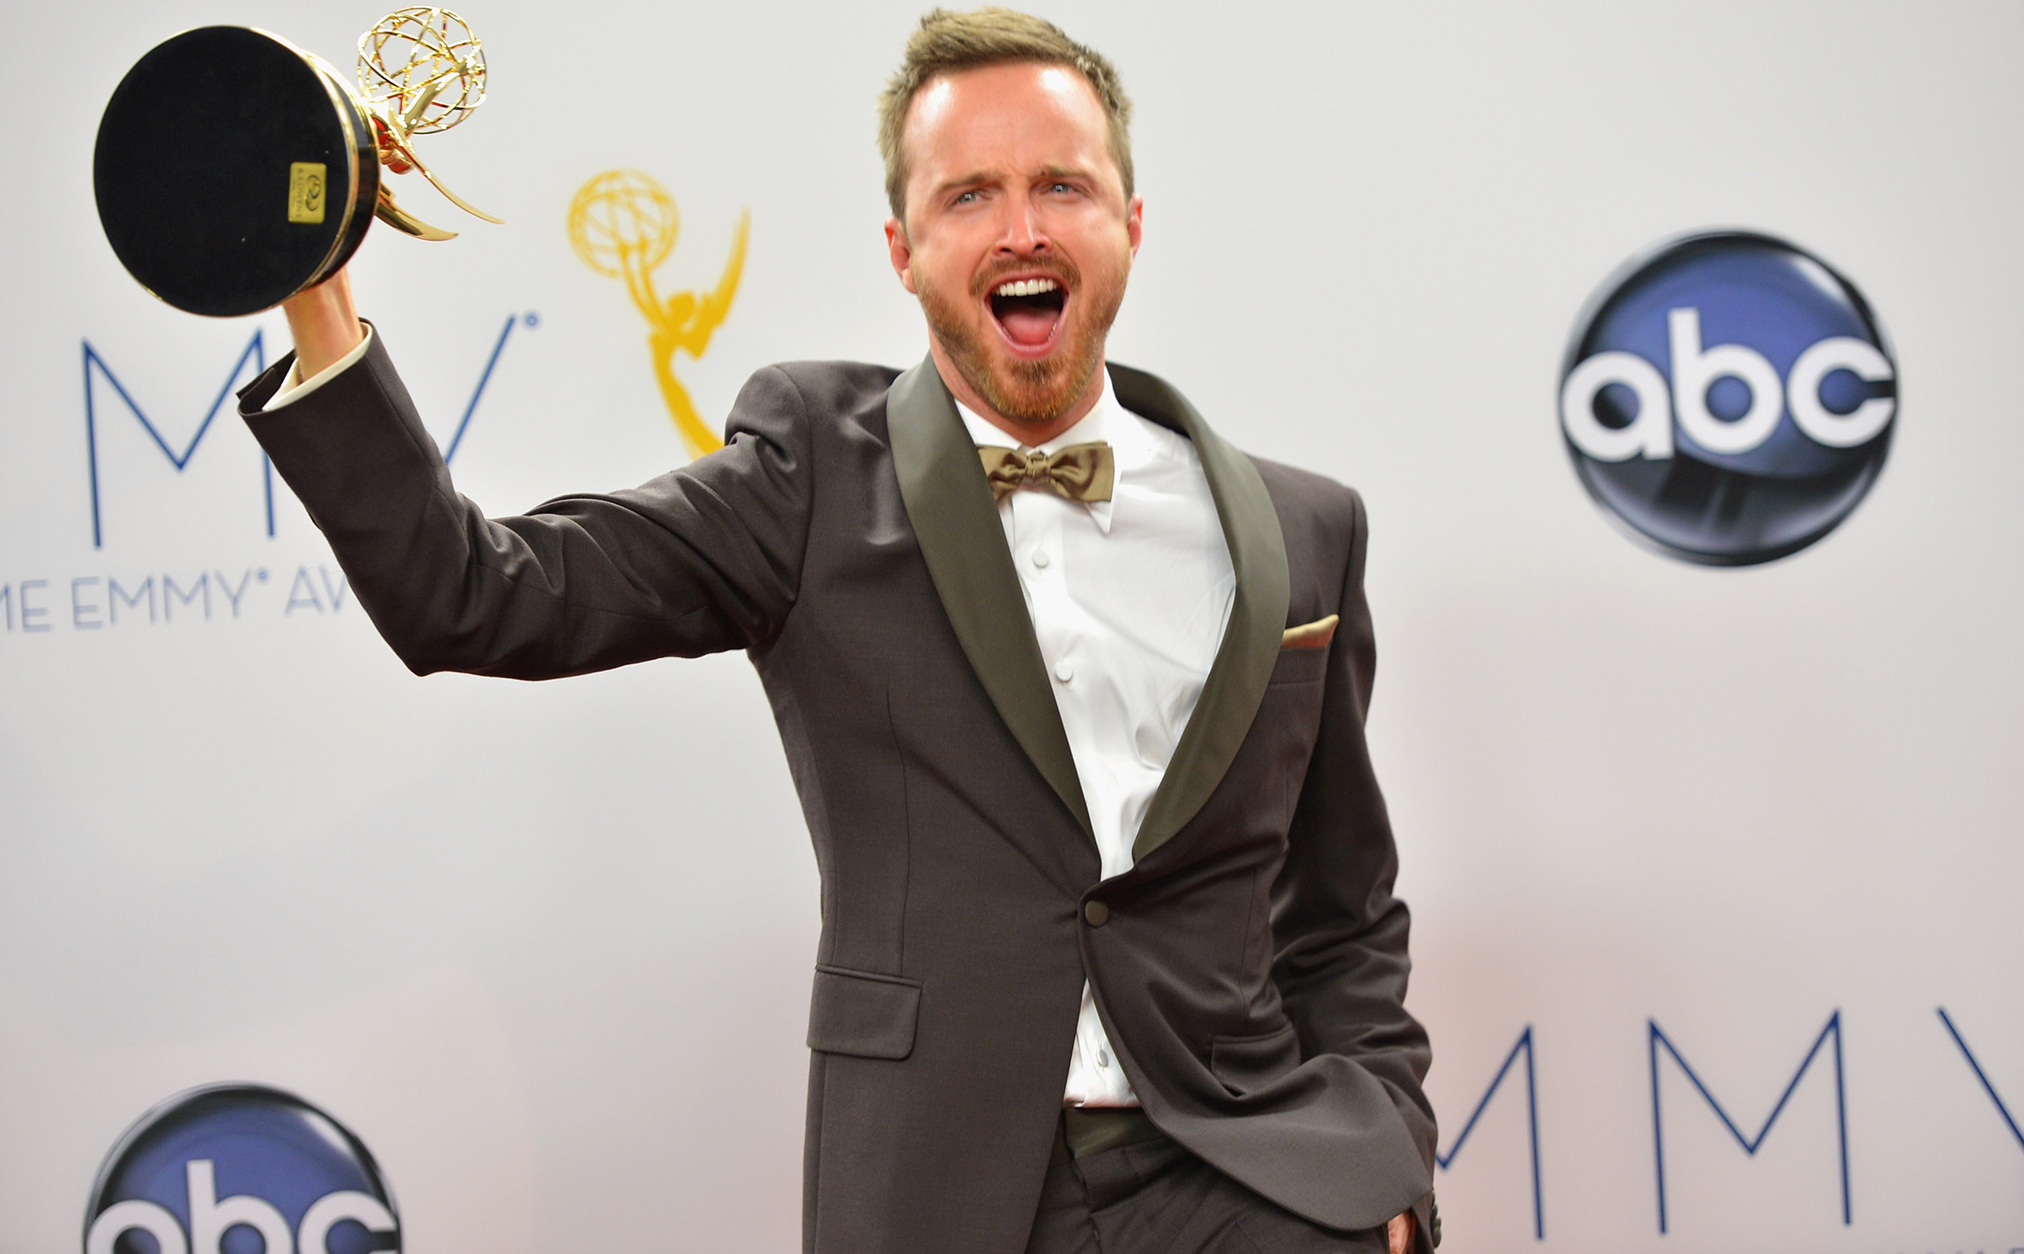 Aaron Paul could take home his third Emmy next month. (Getty Images)